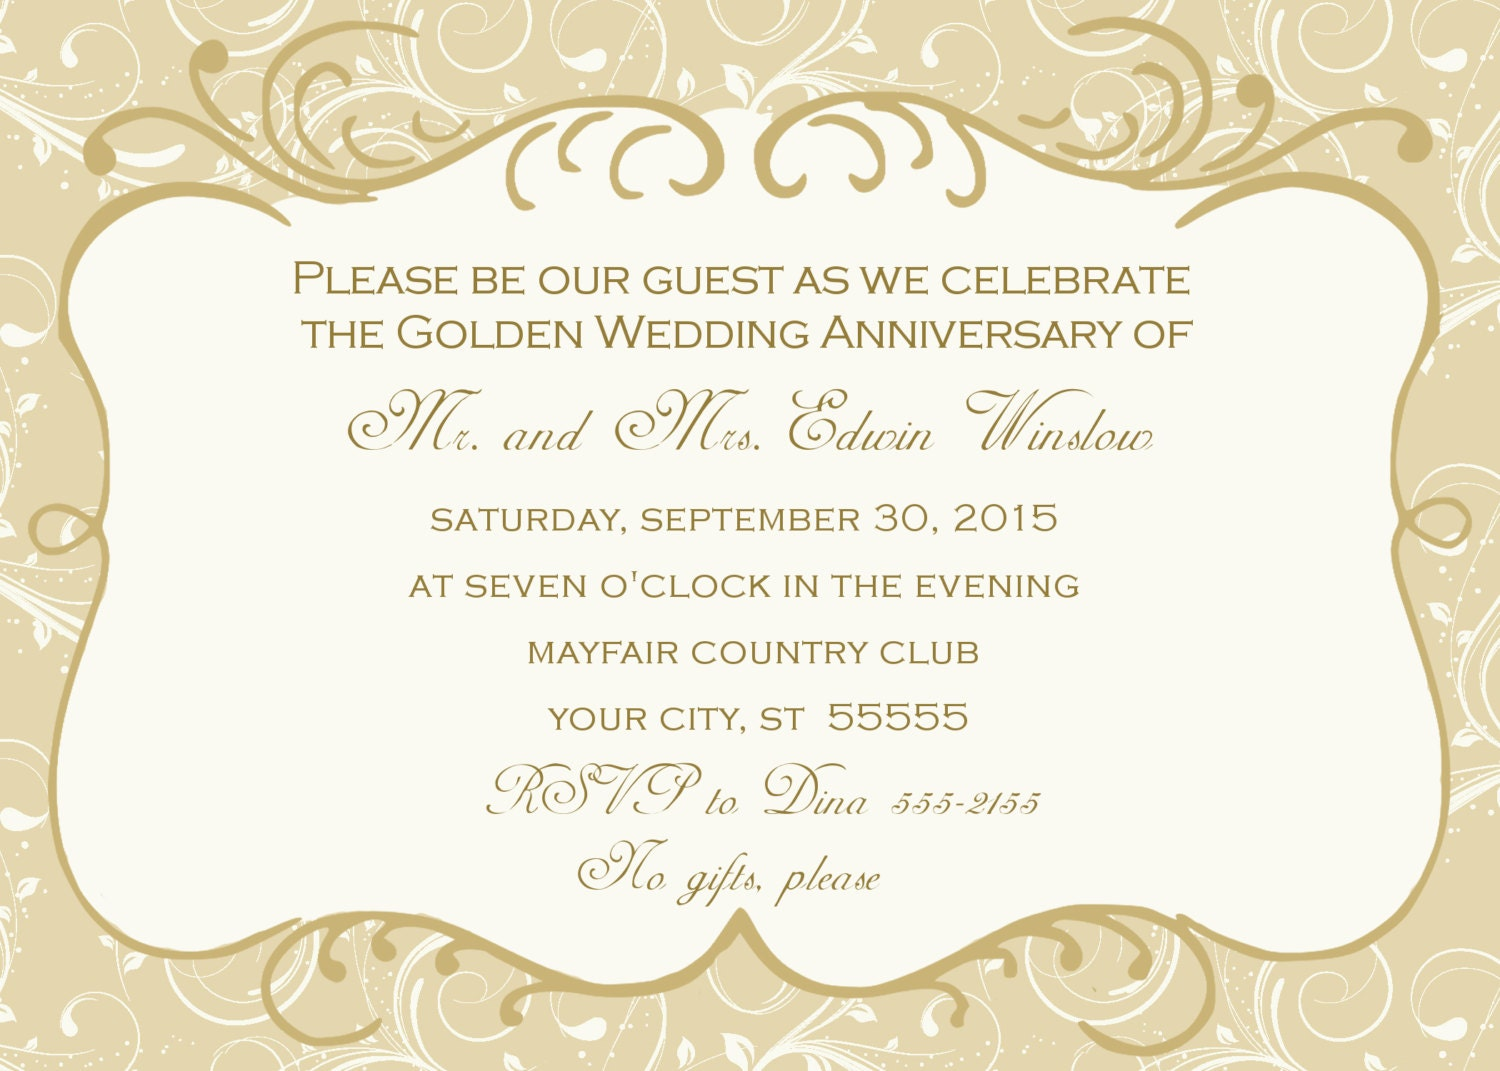 50th Wedding Anniversary Invitation Ideas: 50th Wedding Anniversary Invitation